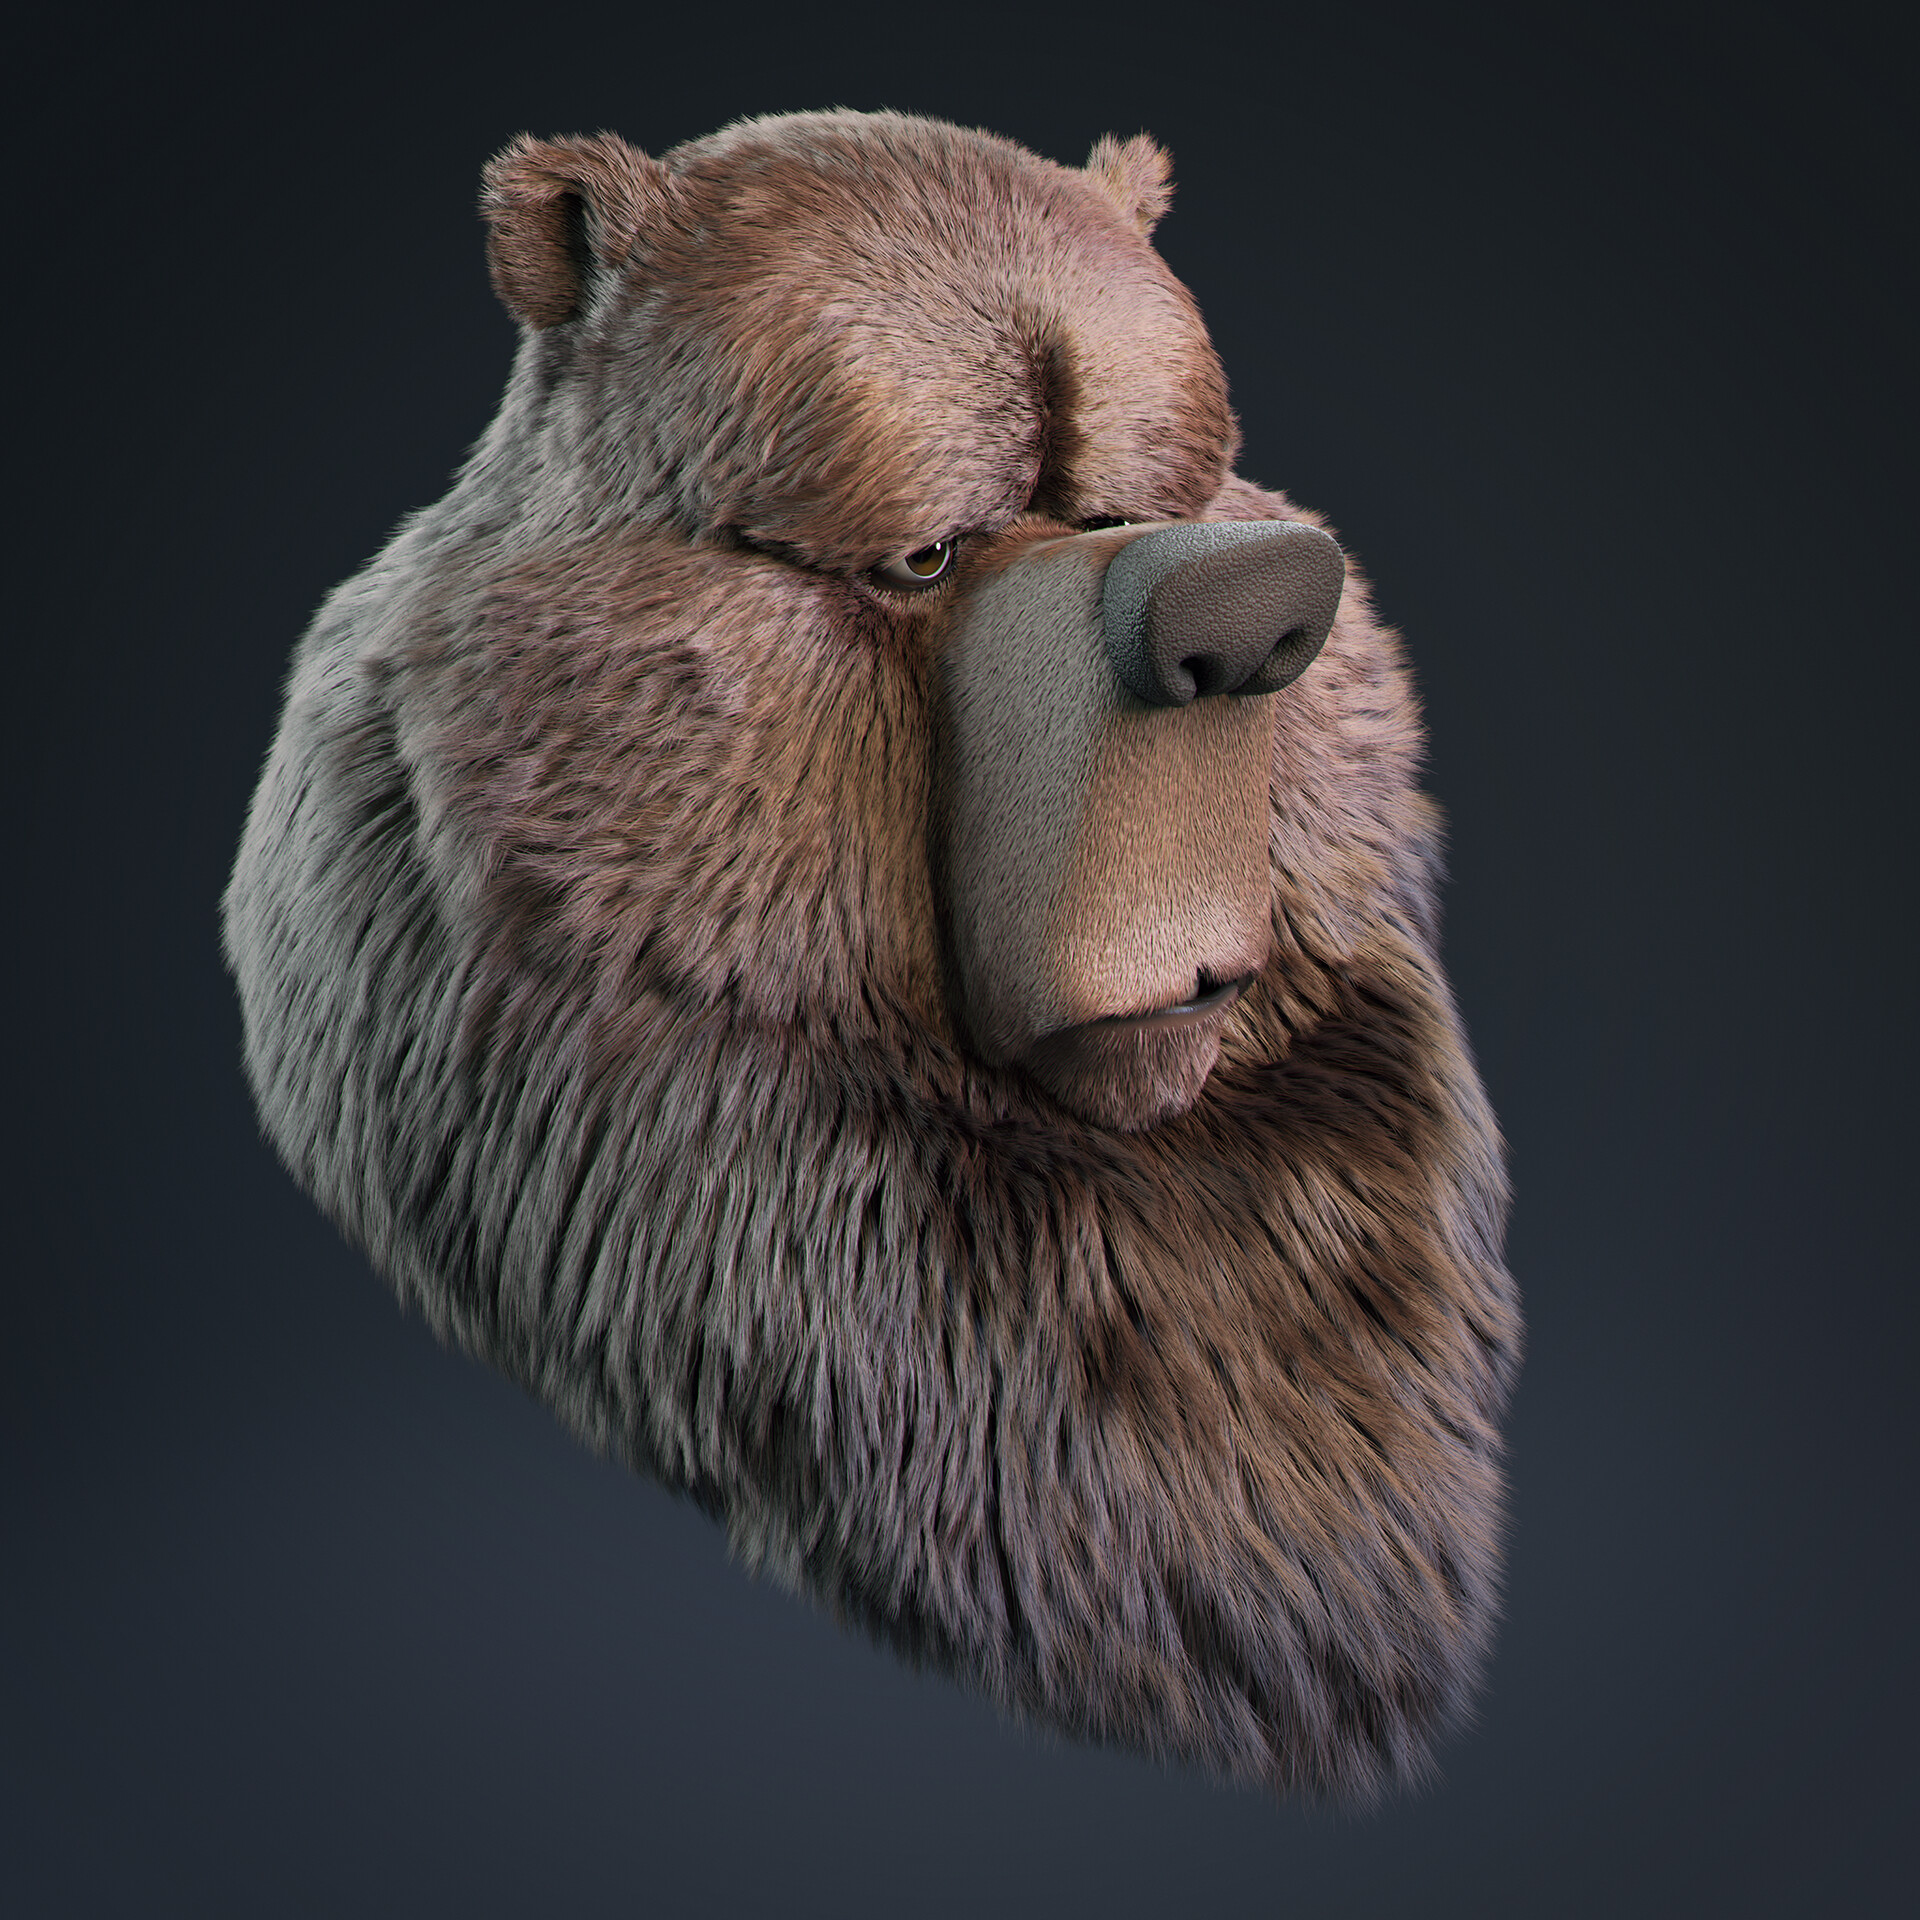 Javier diaz bear model v011 render cam